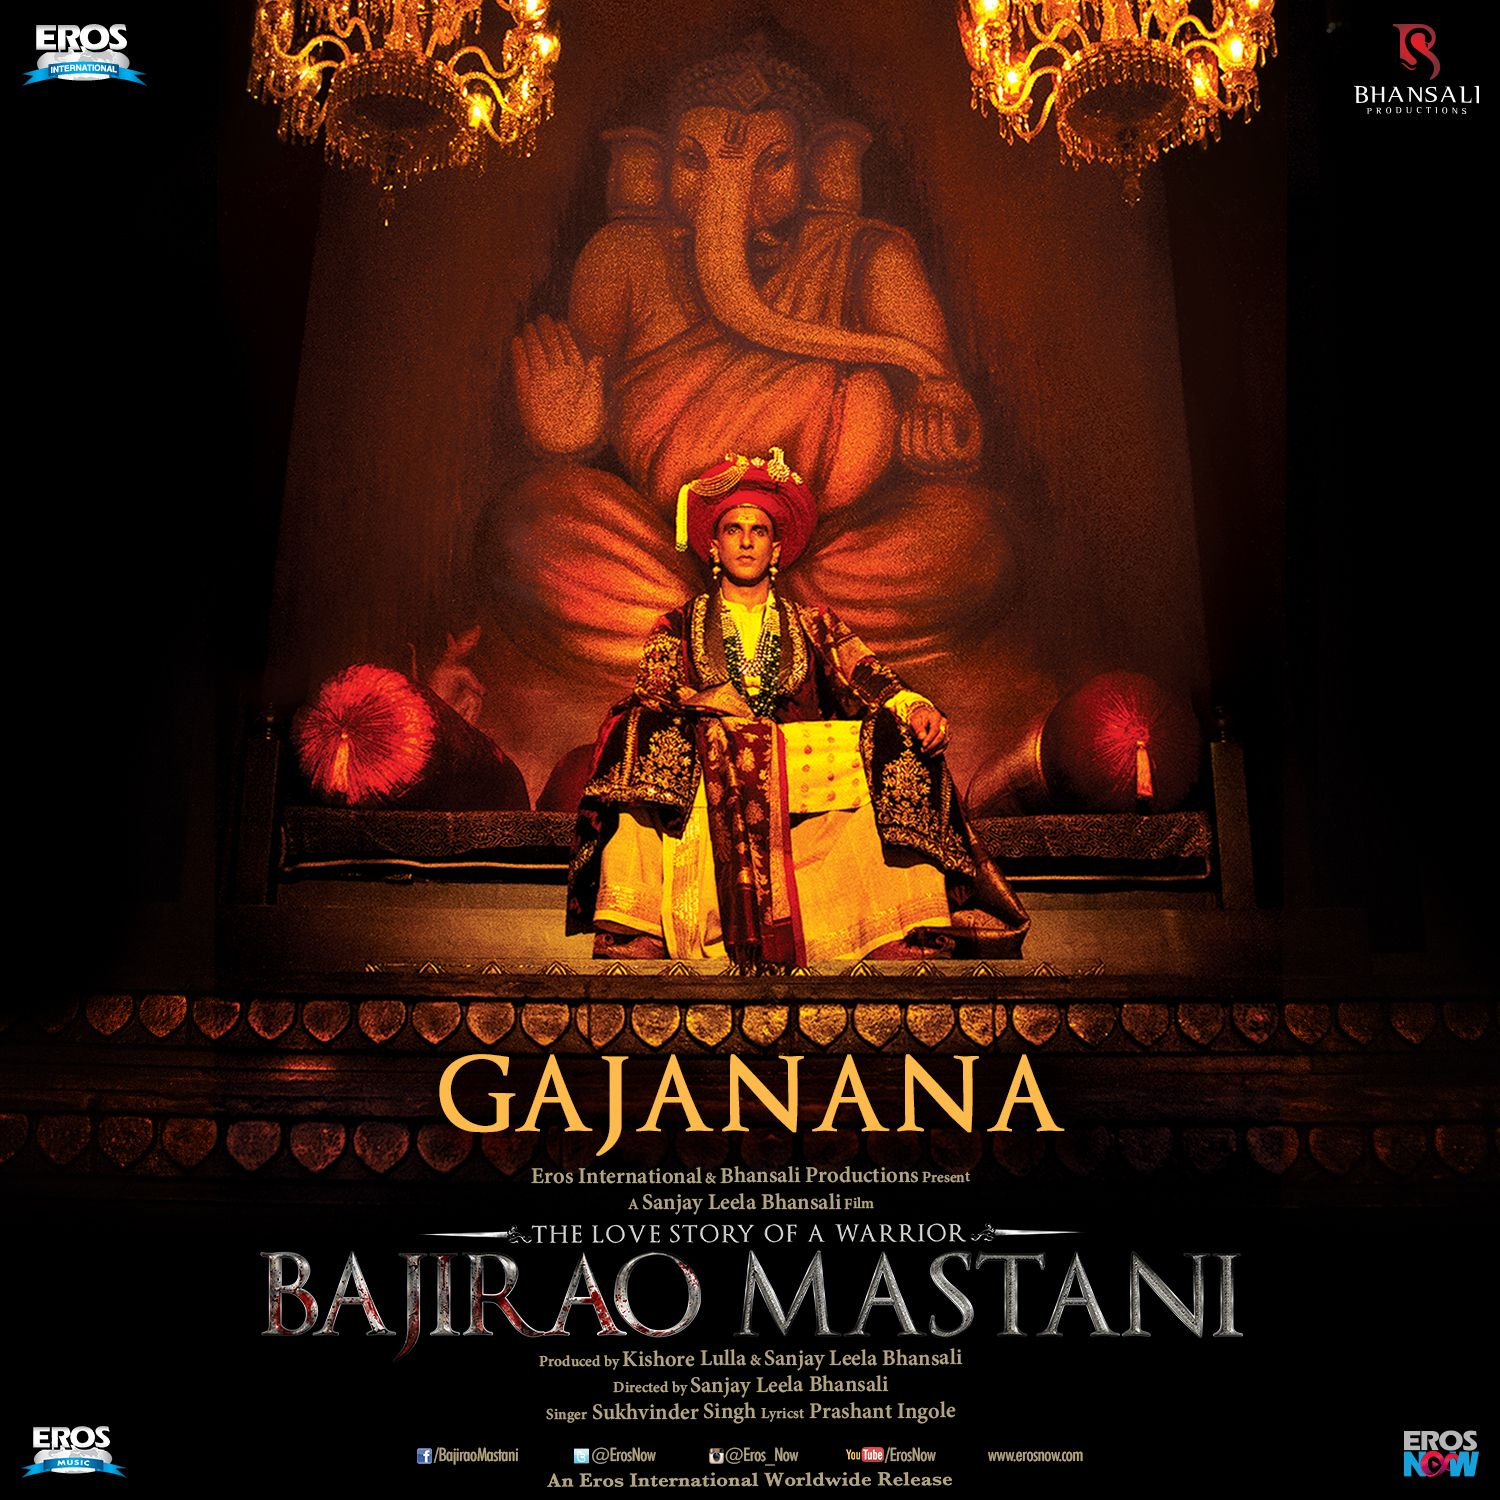 Bajirao Mastani sets world record